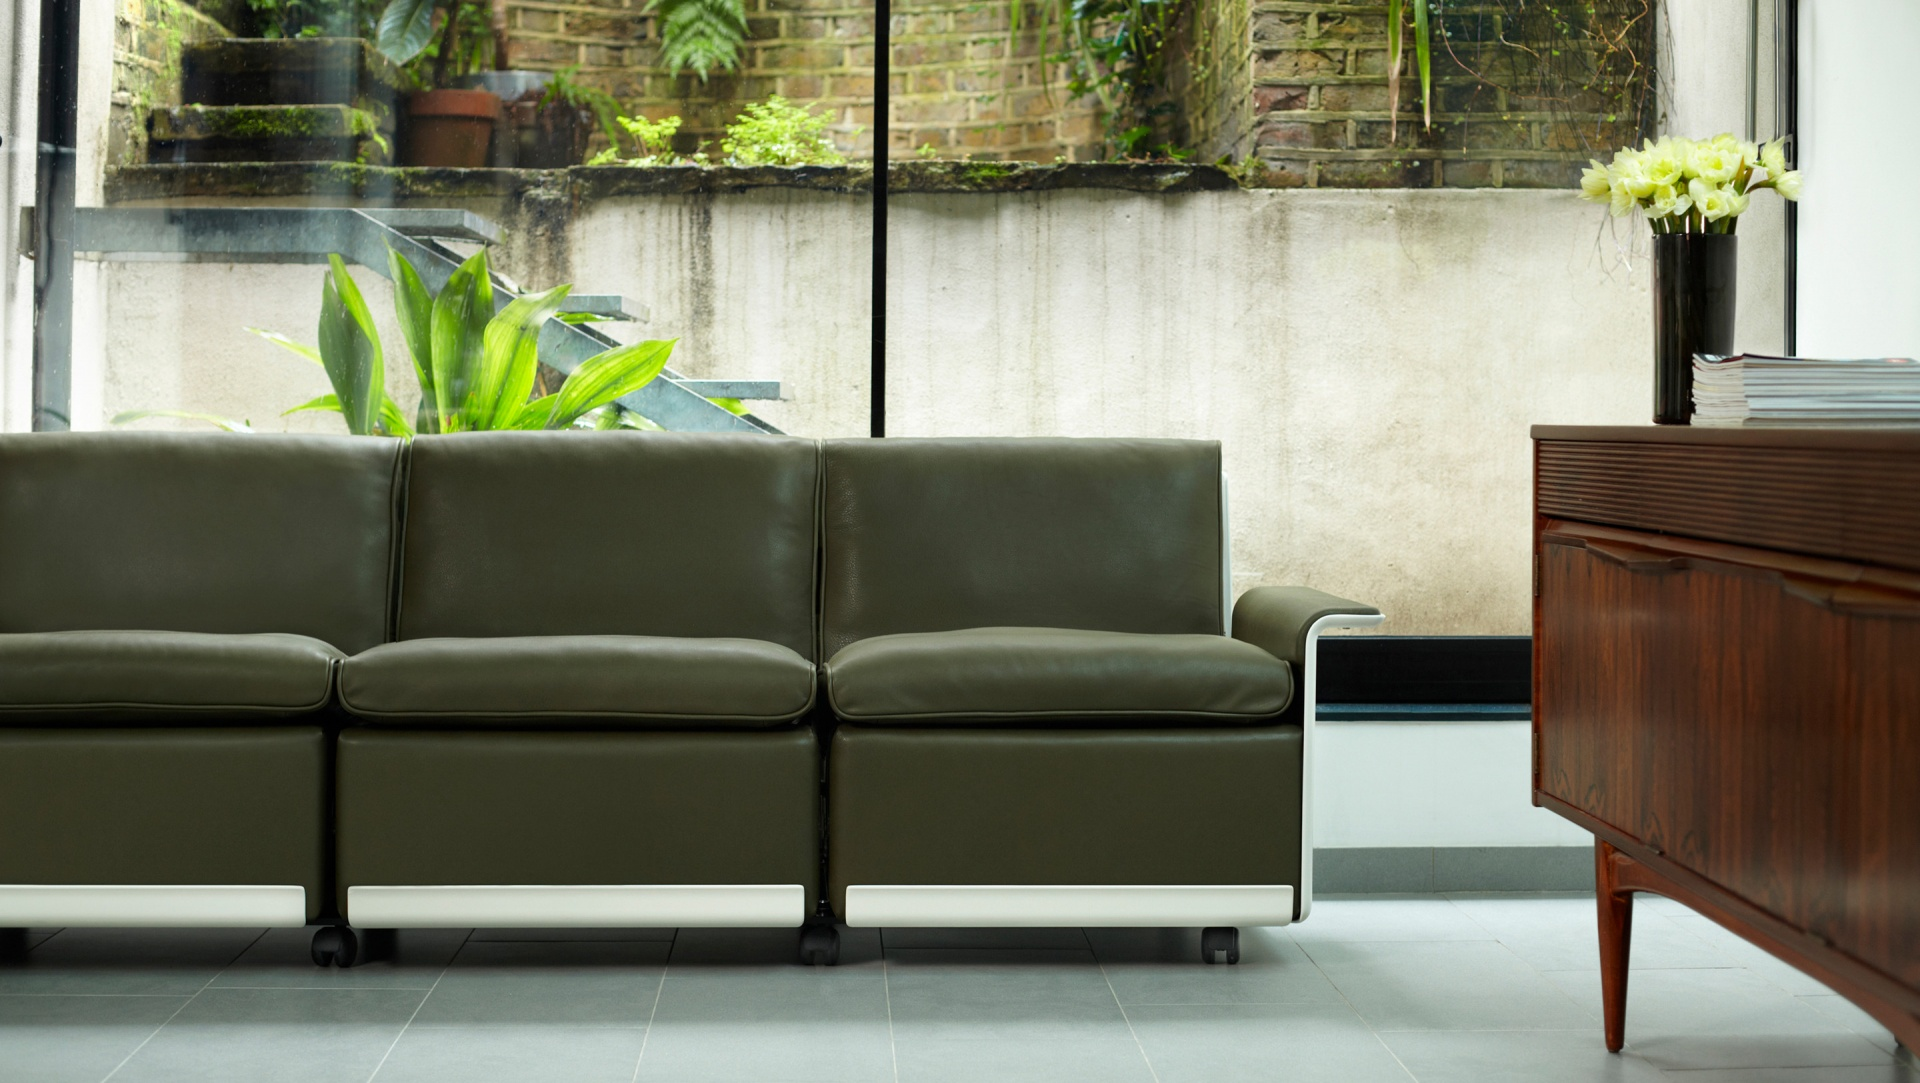 A 620 sofa sits comfortably between modern surroundings and a midcentury sideboard